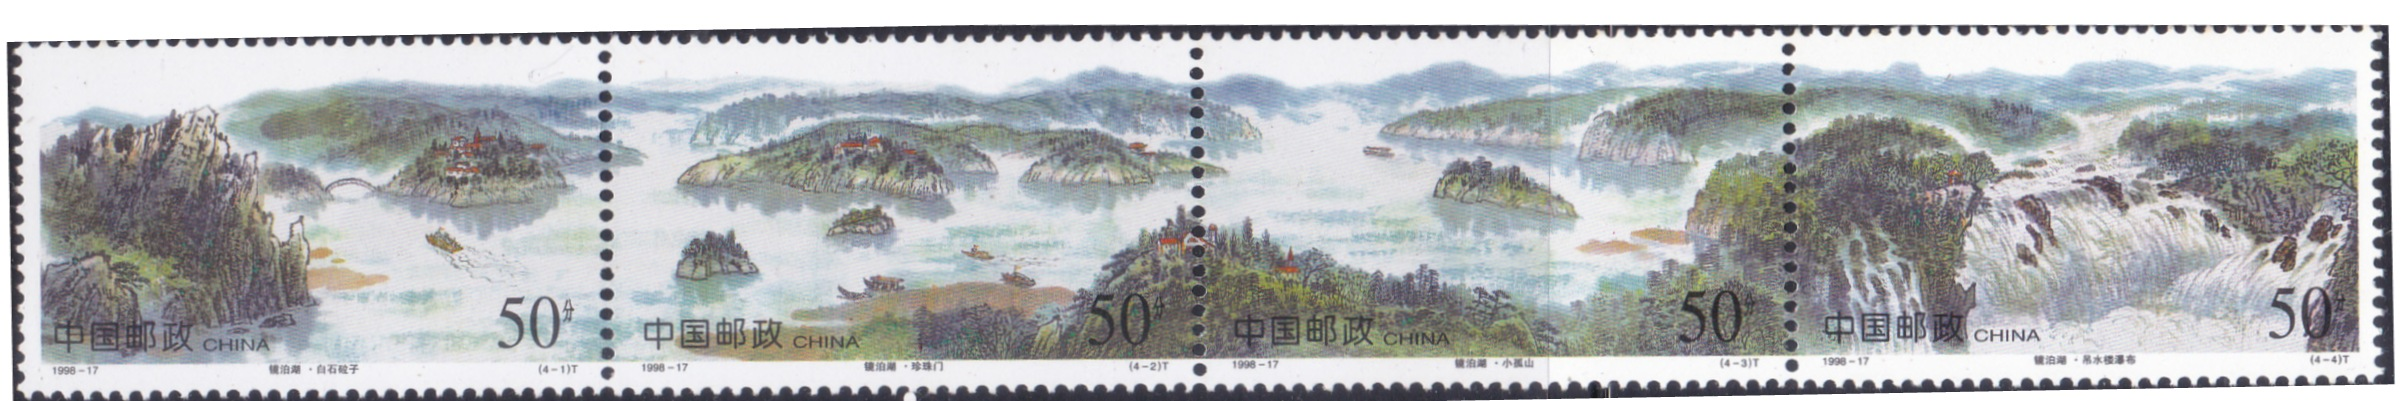 2883-2886 Different views of Jingpo Lake [China se-tenant strip of 4 stamps]